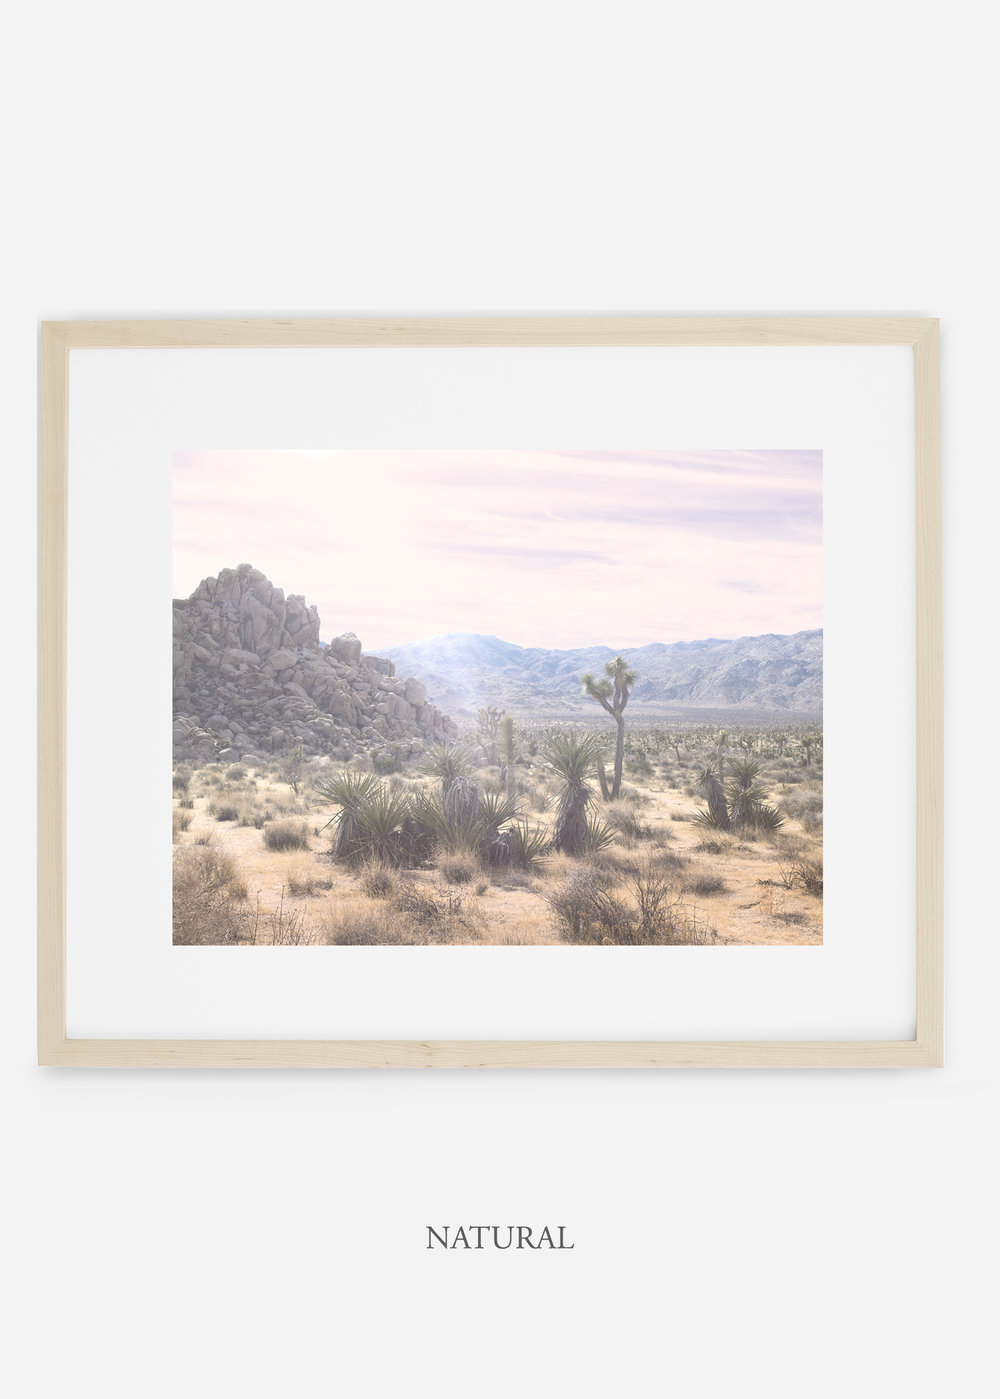 WilderCalifornia_naturalframe_JoshuaTree_No.9_interiordesign_prints_art.jpg